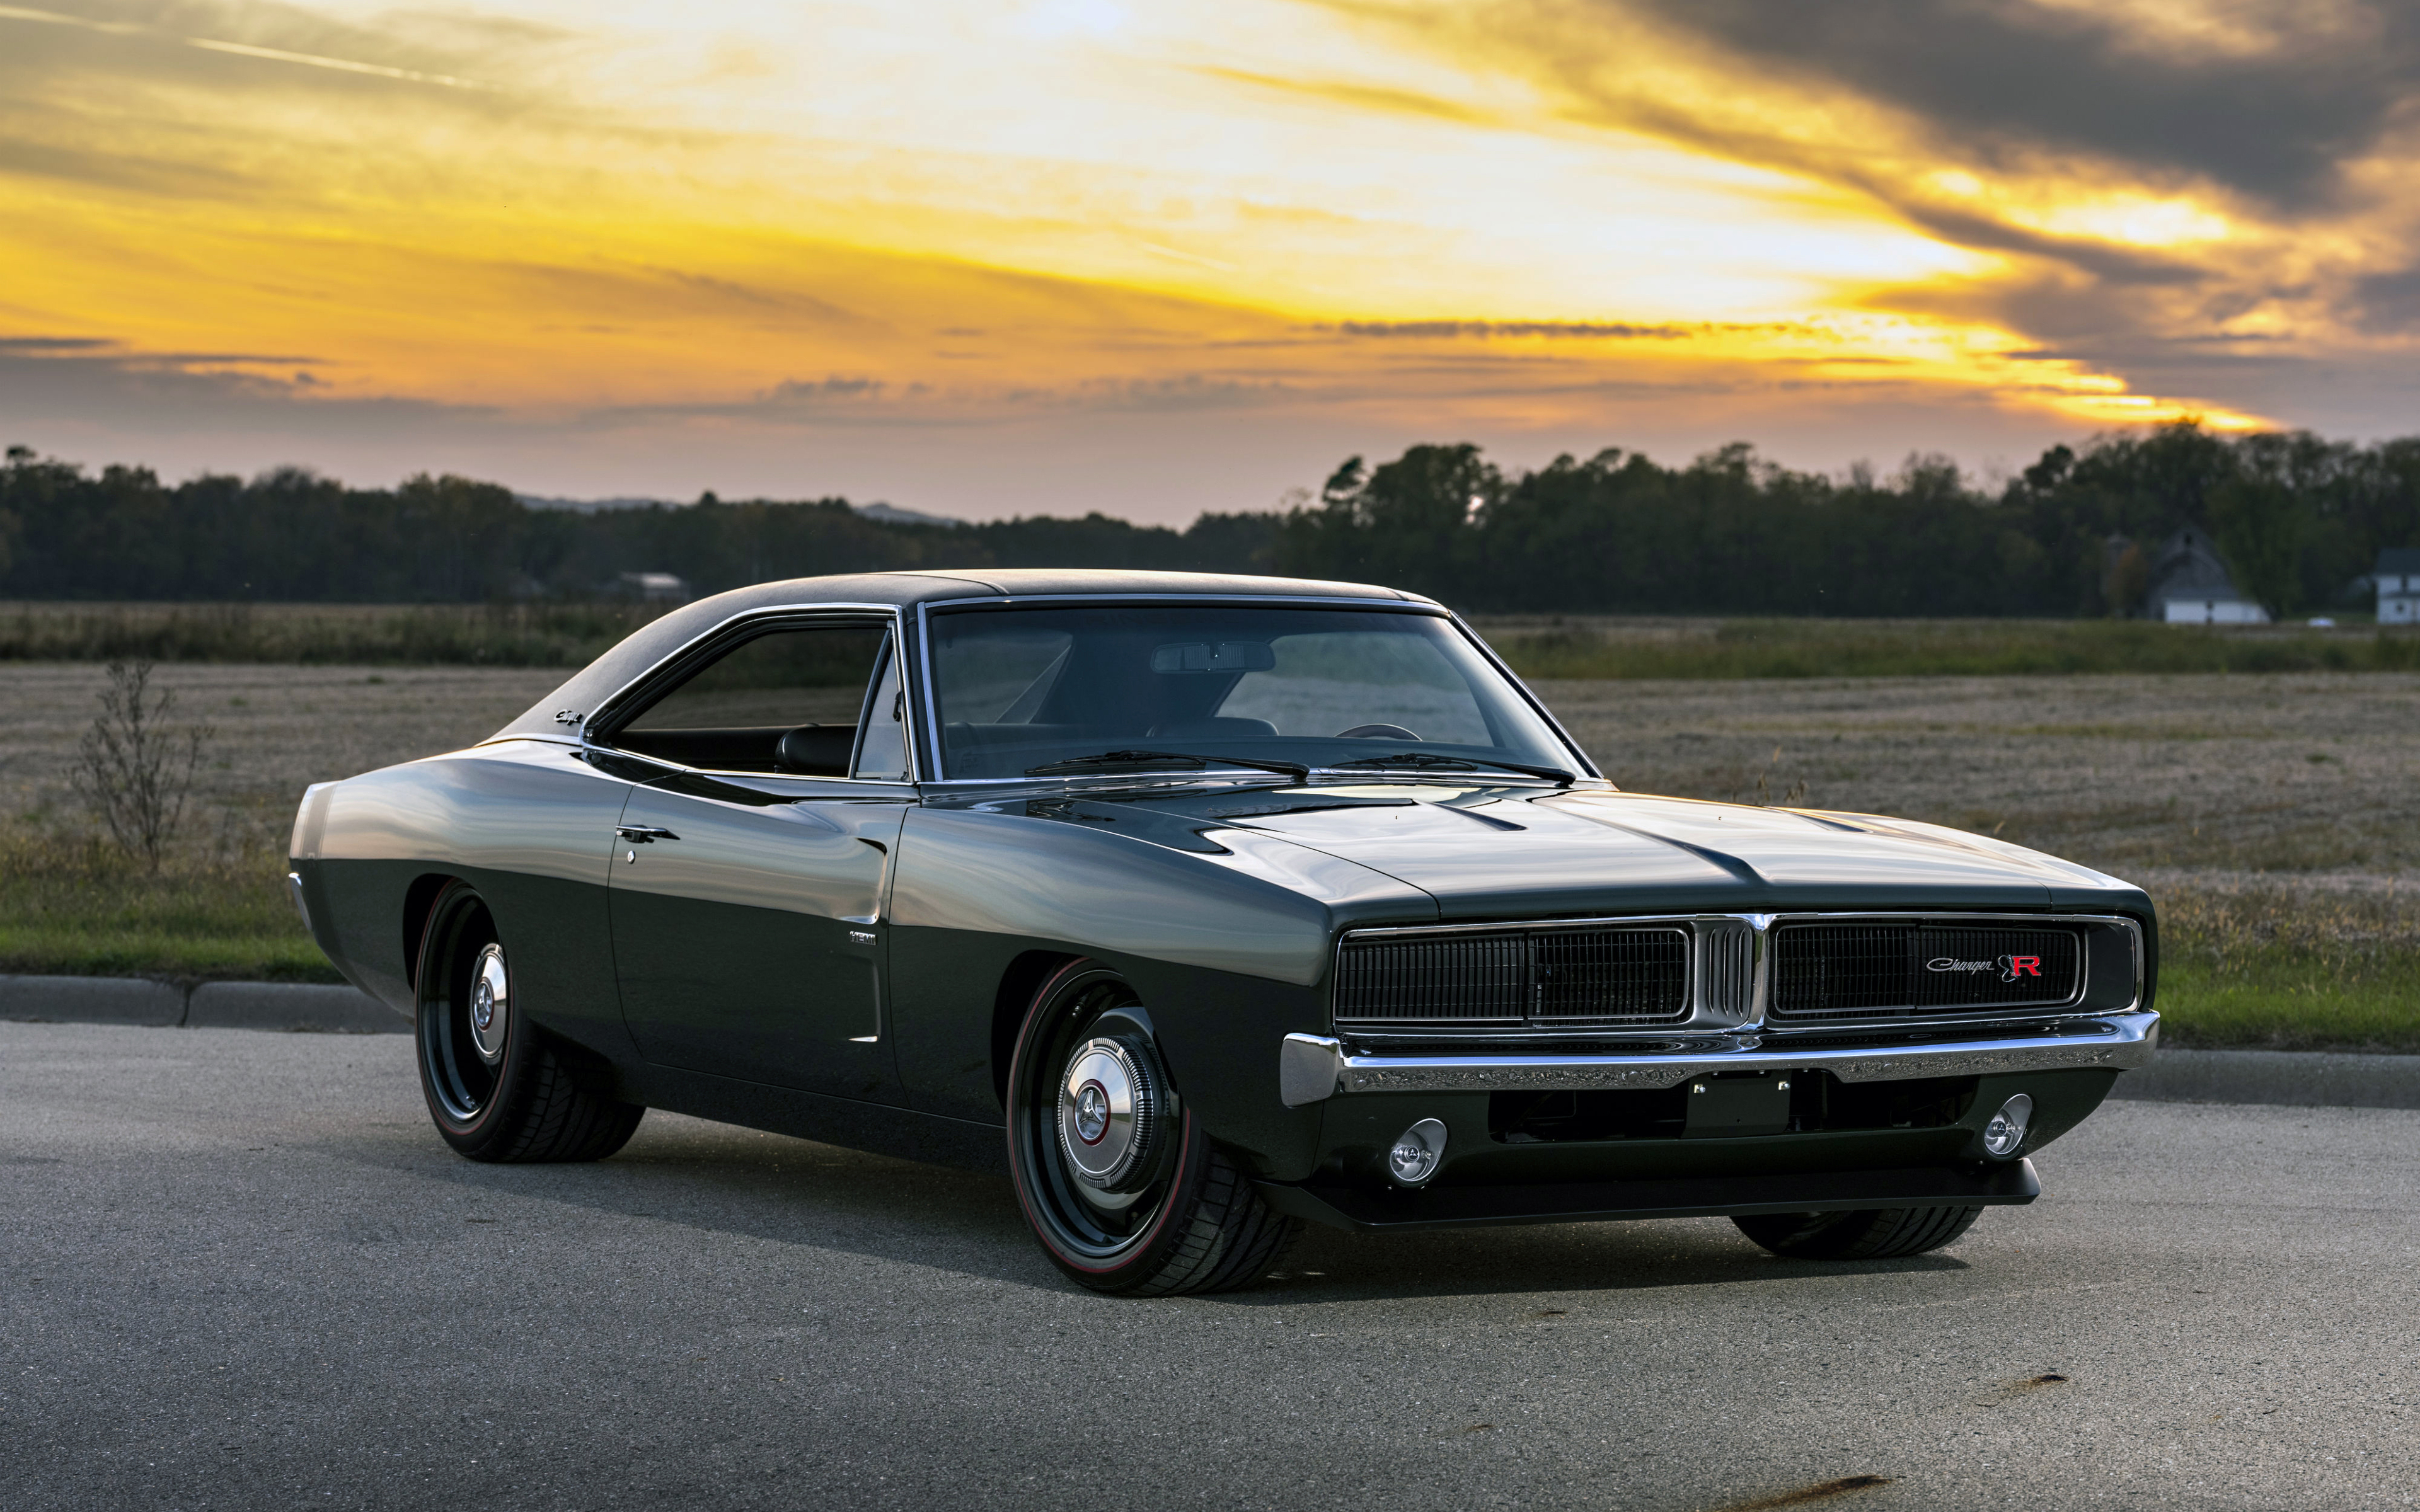 American Muscle Cars Hd Wallpapers Download 3840x2400 1969 Ringbrothers Dodge Charger Defector Front